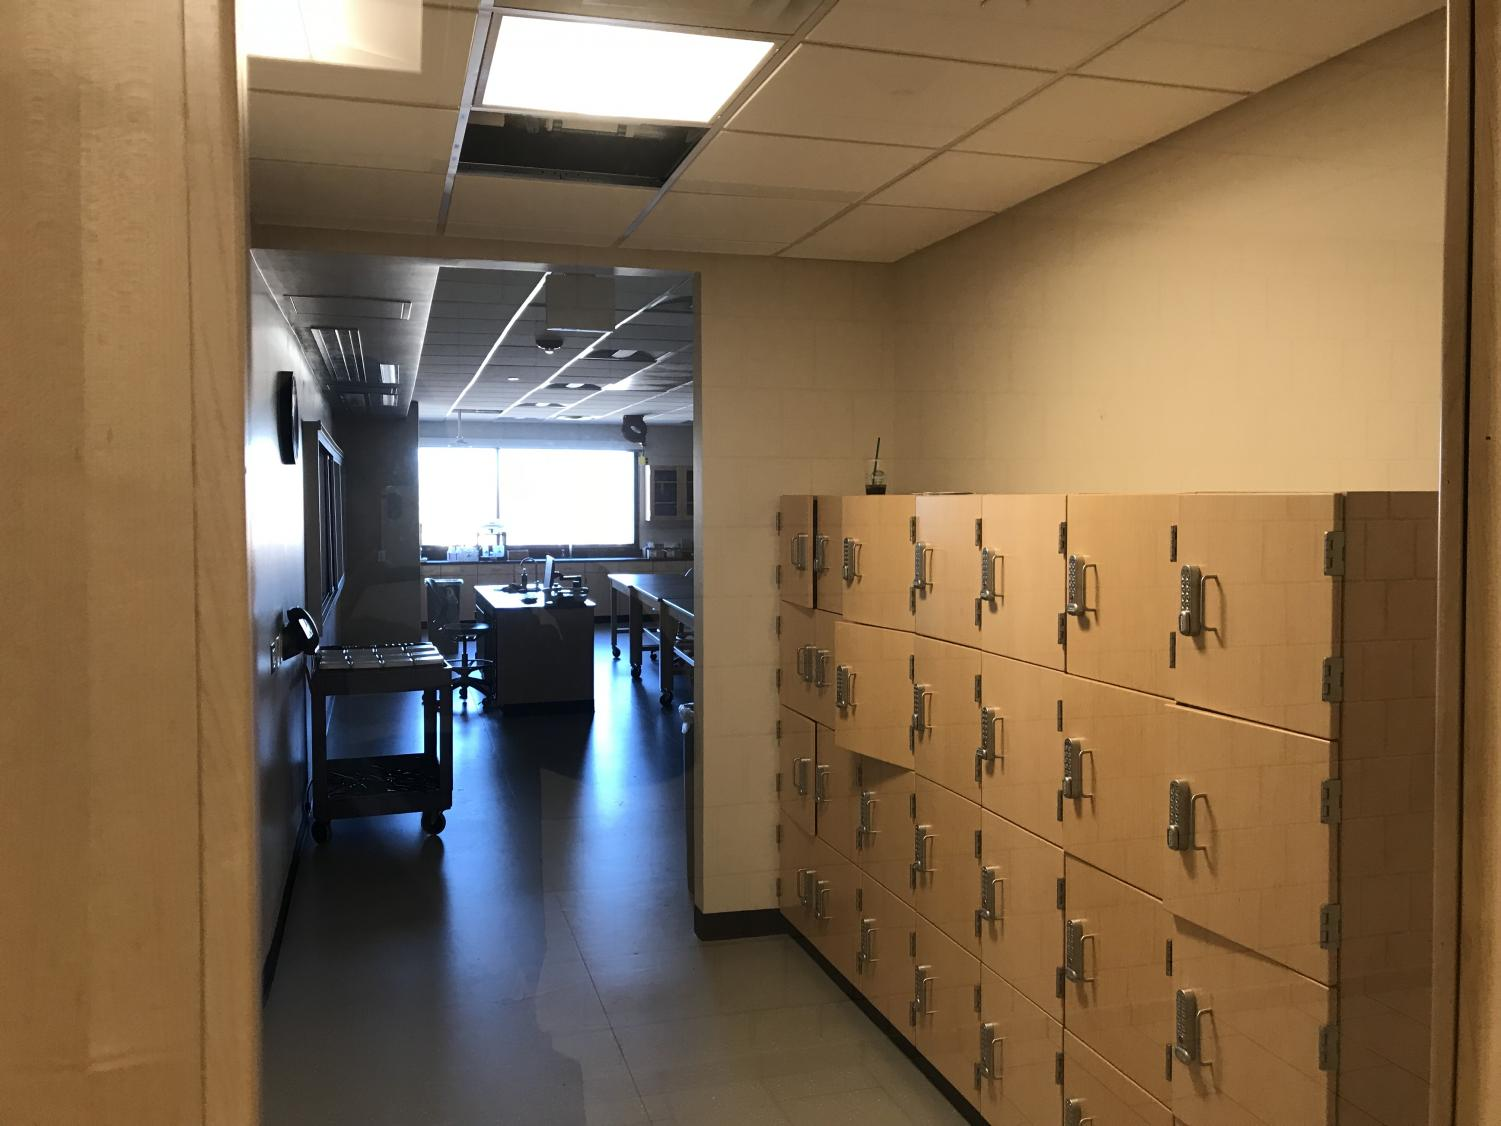 Students now get storage space for their belongings outside of the new science labs. The renovation to the third floor of ACC's main building on the Littleton campus was recently completed.